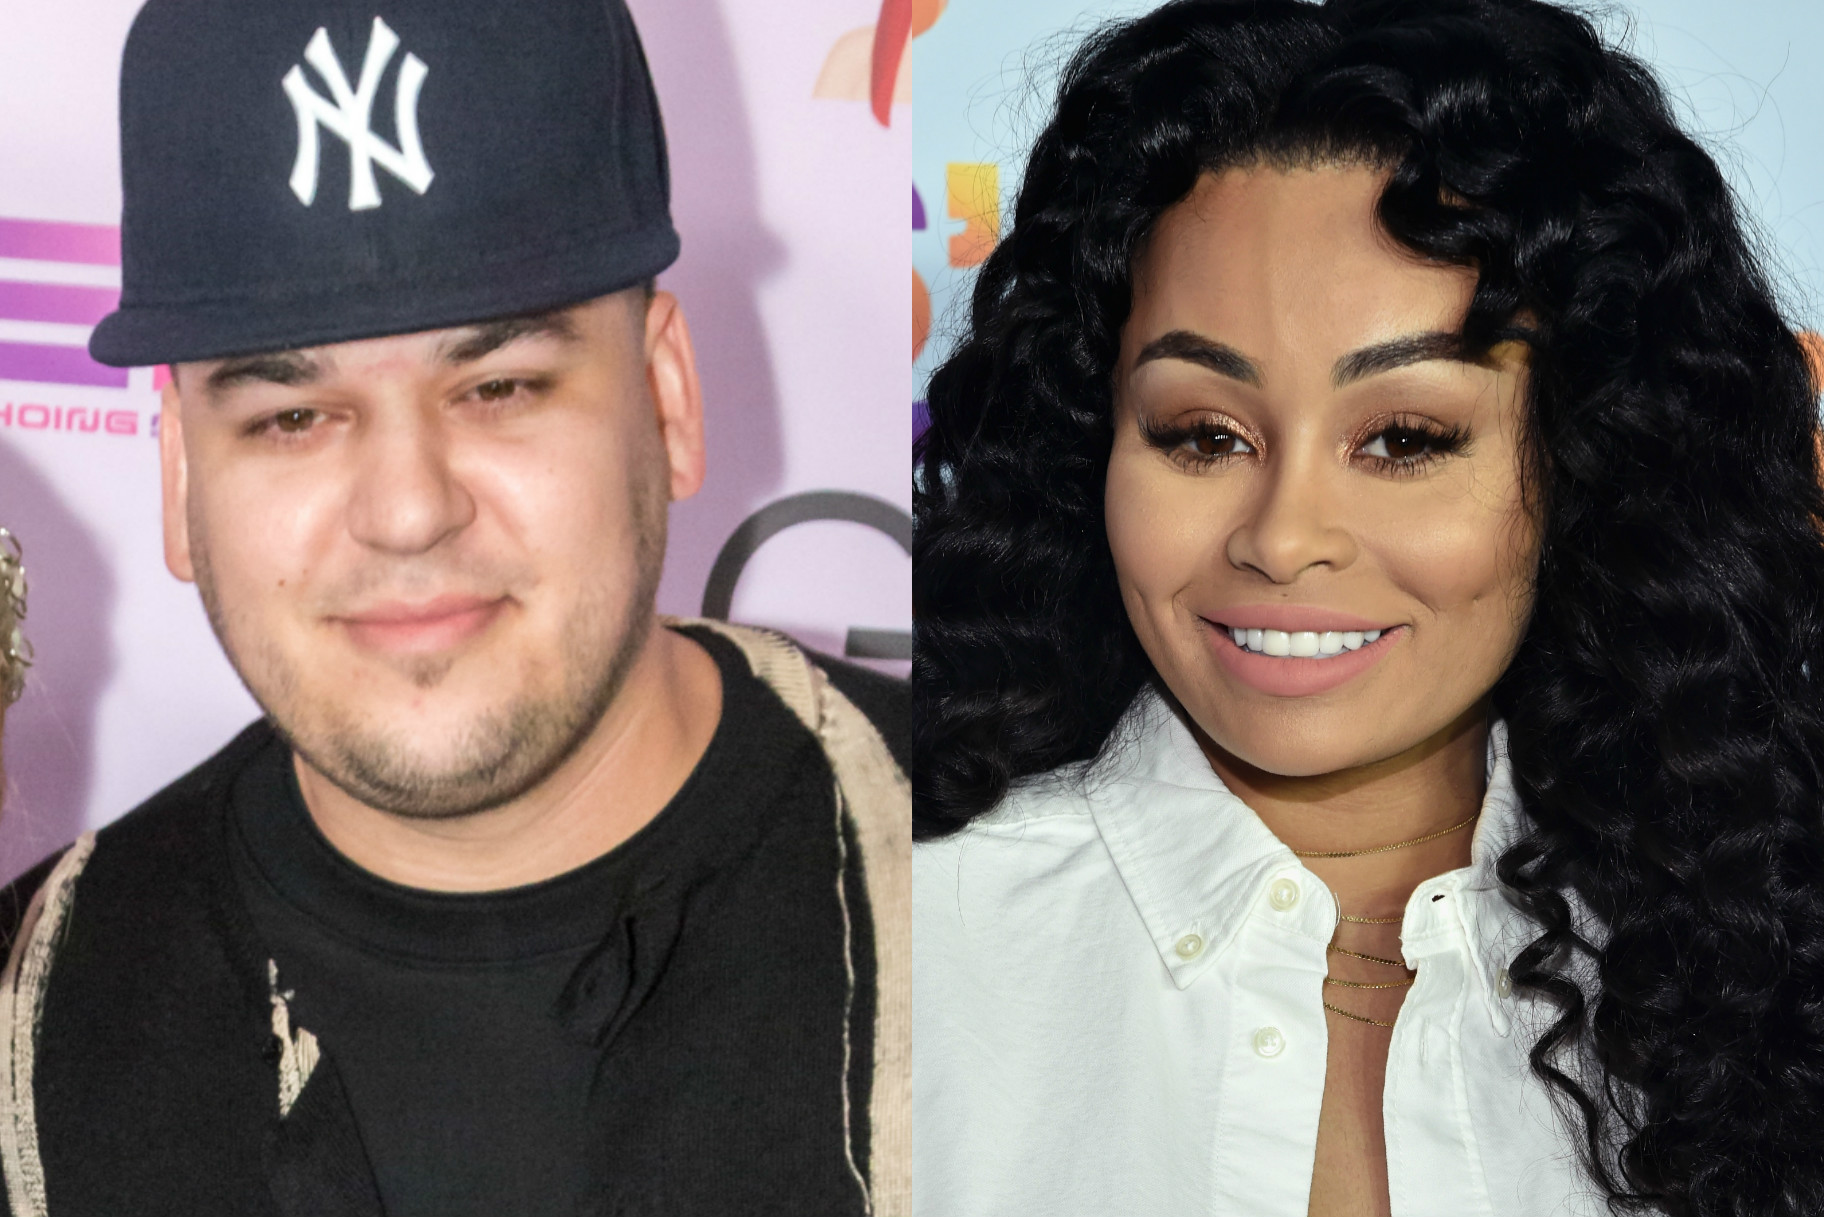 Blac Chyna Fires Back at Rob Over Filming Dream, Calls